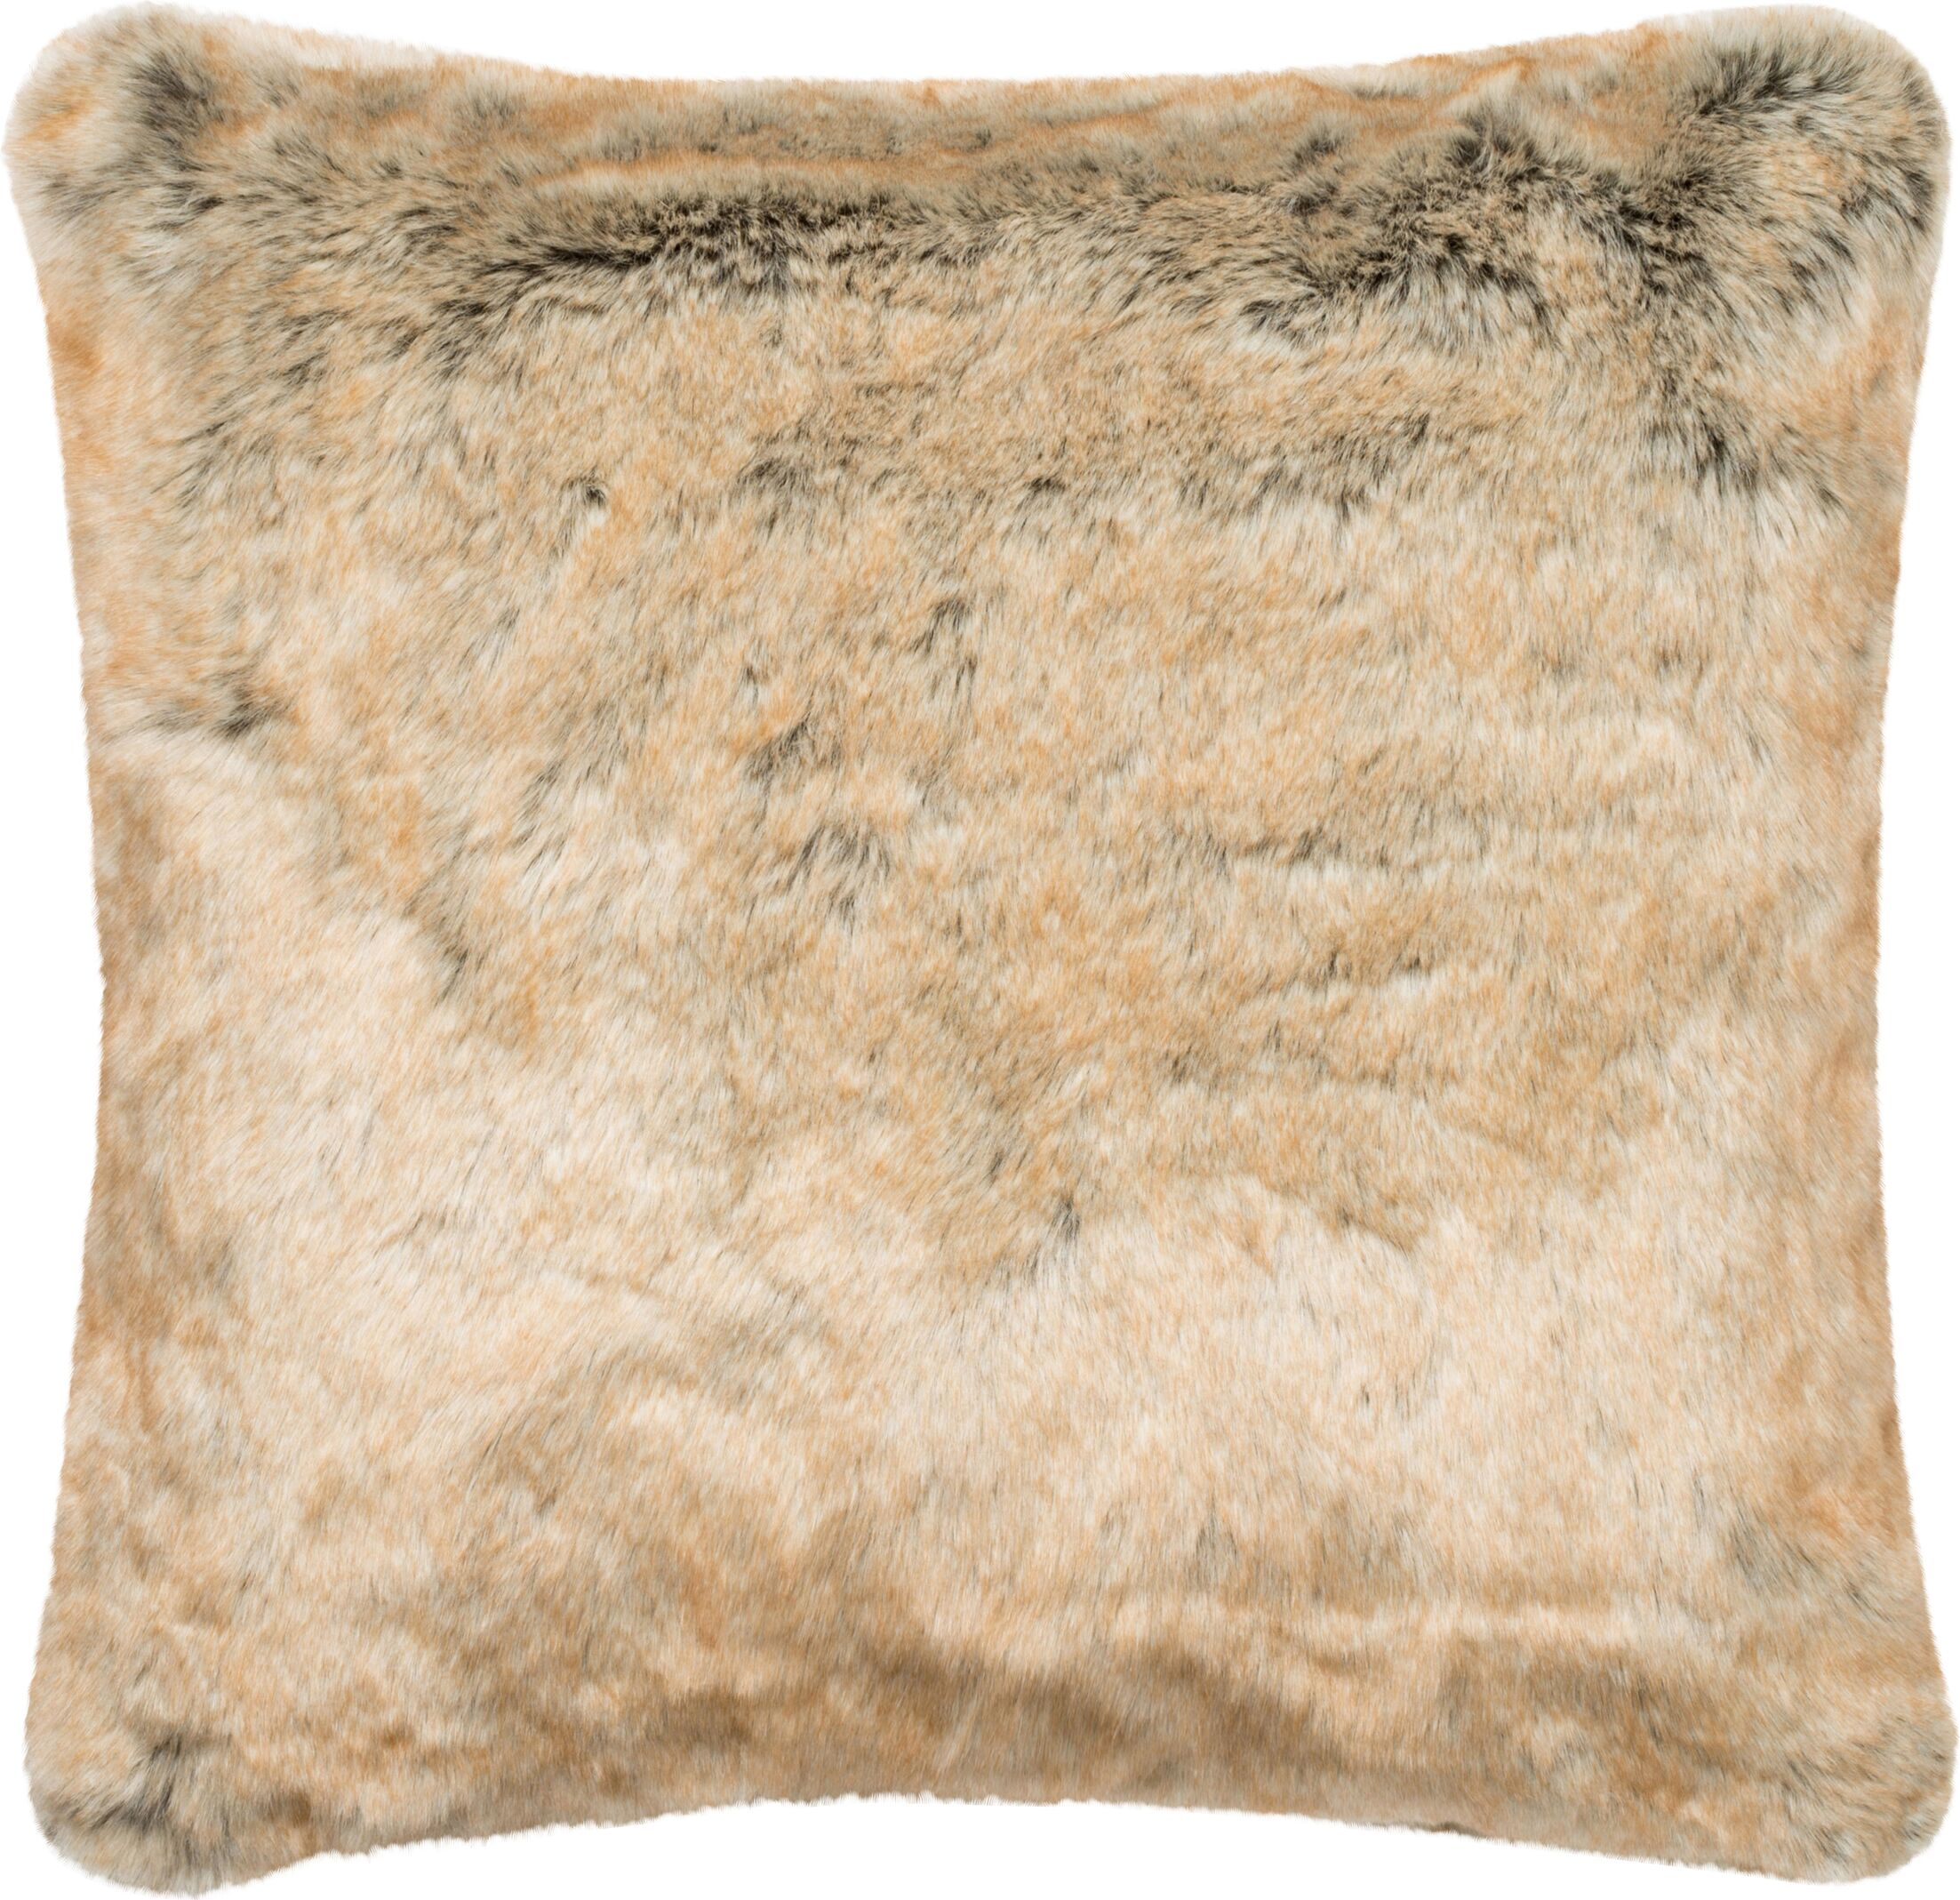 Trussell Throw Pillow Color: Beige